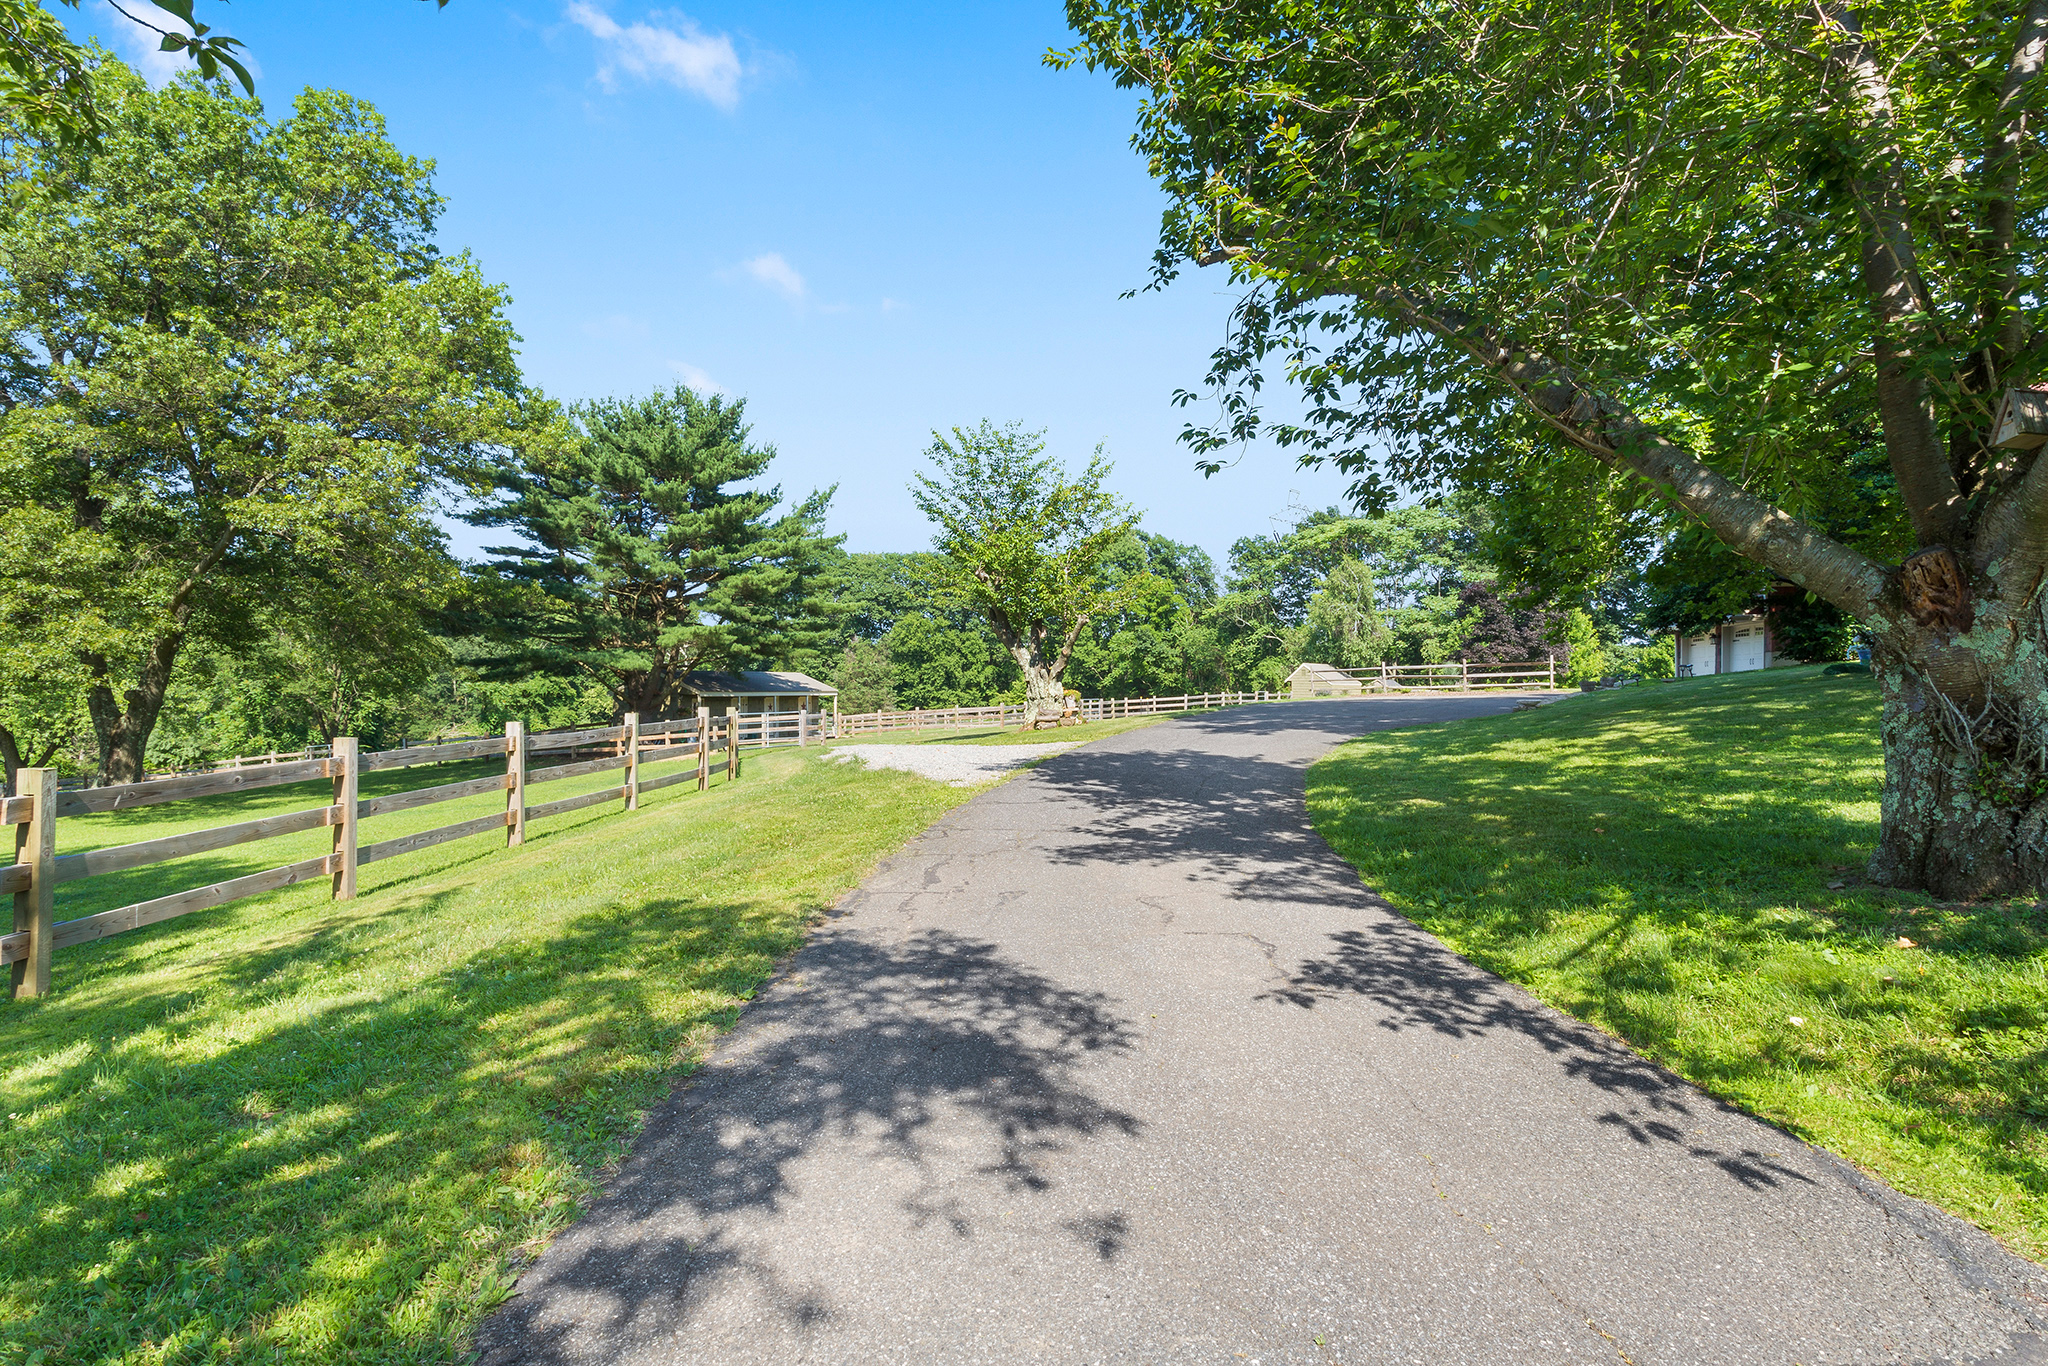 18 7 Scarlet Oak Road Tewksury Township — View of driveway